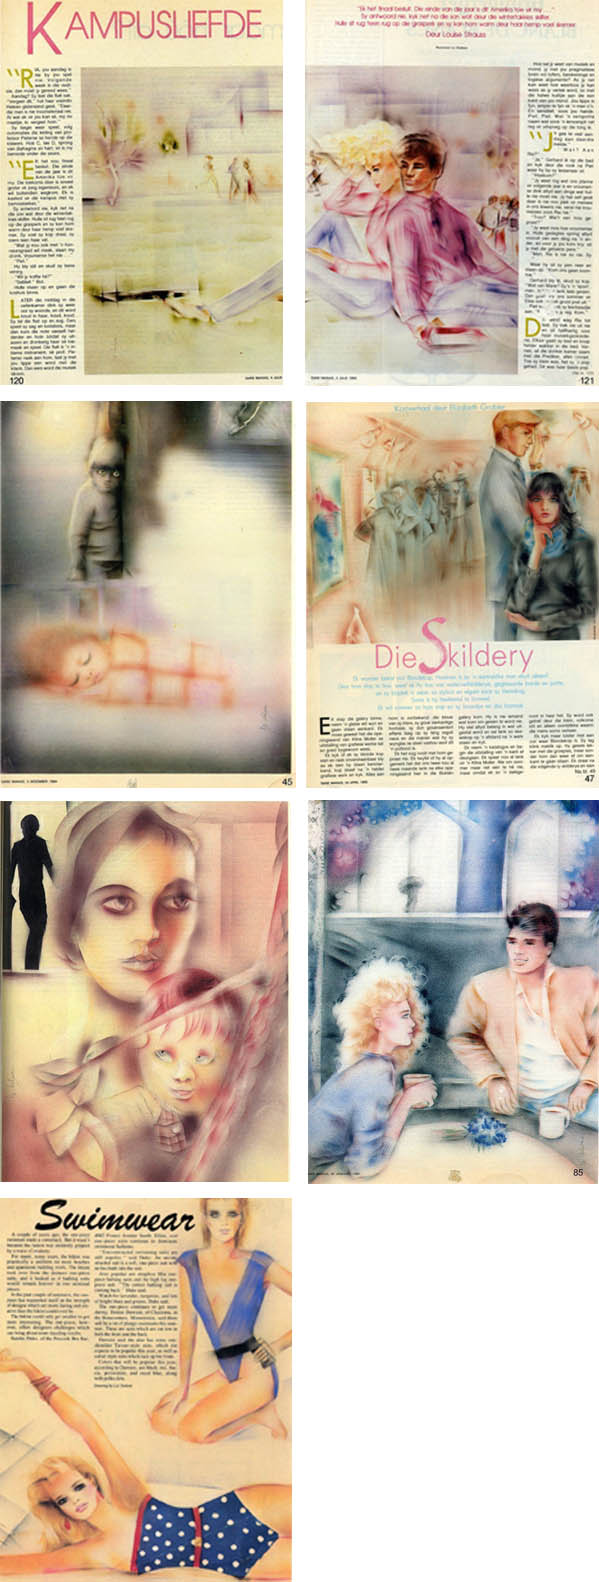 These freelance Magazine Illustrations were painted with acrylic airbrush.  They were made while Liz lived in Alice, South Africa for Sarie Magazine in Capetown, SA.